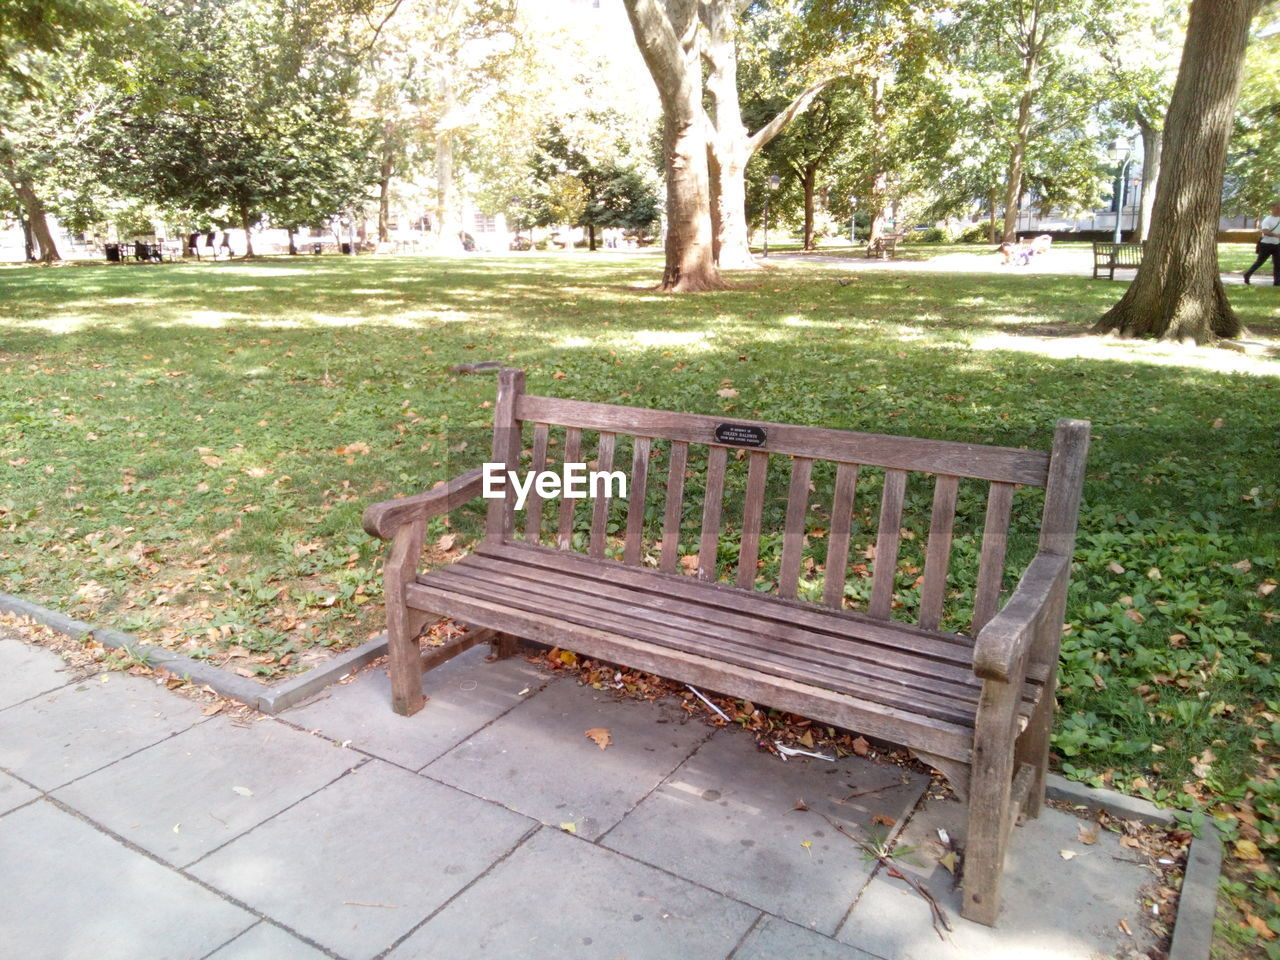 tree, park, plant, seat, bench, park - man made space, nature, day, grass, relaxation, park bench, outdoors, tree trunk, wood - material, trunk, footpath, lawn, empty, absence, front or back yard, no people